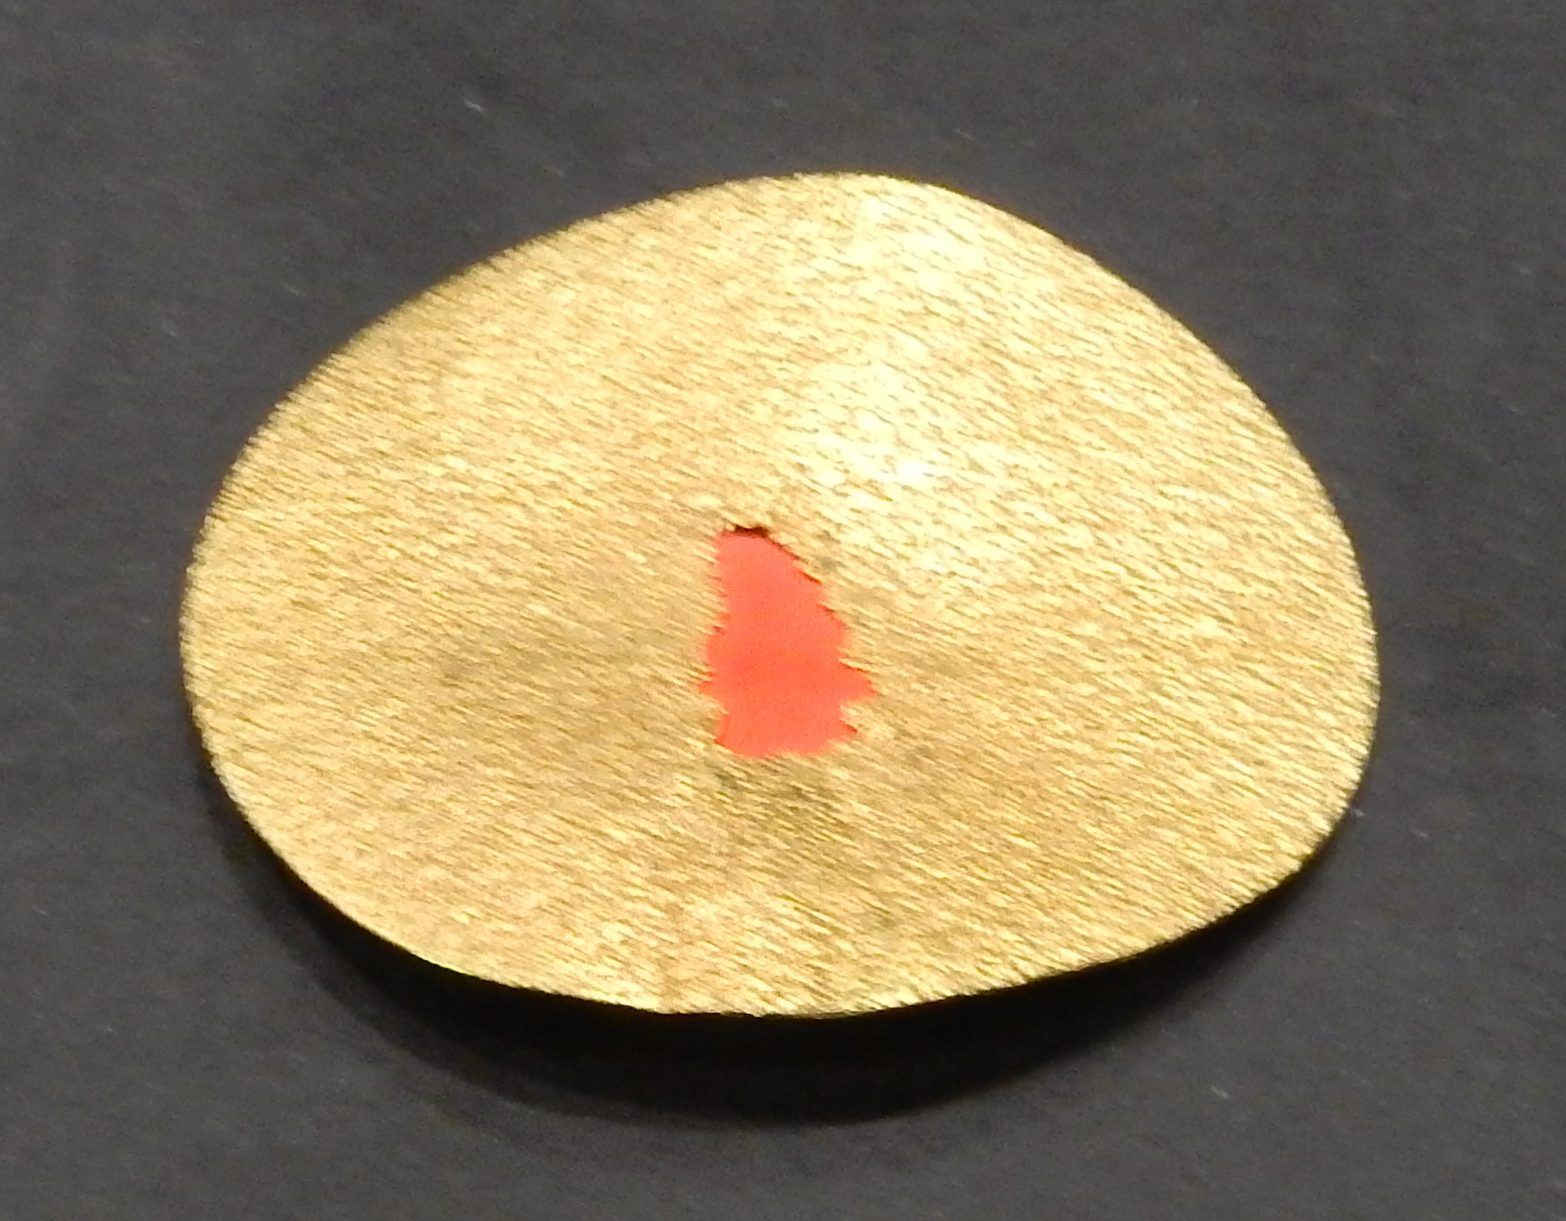 Georg Dobler, The Red Hole, broche, 1992. Show yourself, Design Museum Den Bosch, 2018, Collectie Yvònne Joris (2018 Collectie DMDB, S2018.024), goud